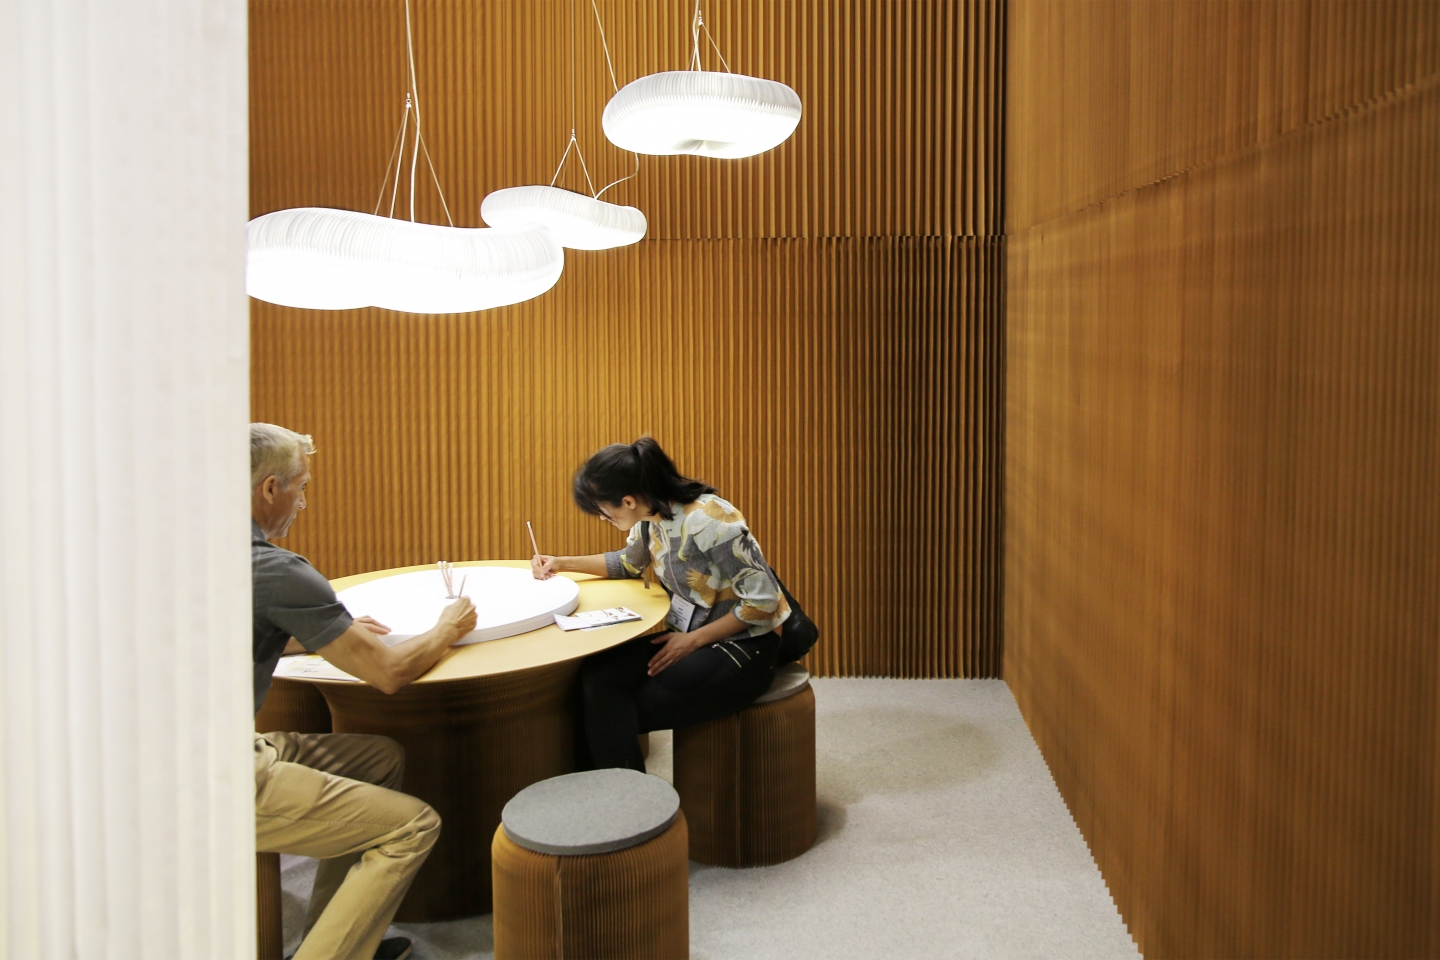 honeycomb paper furniture and cloud lighting by molo - guests at ICFF 2015 draw on molo's sketching circles accessory for cantilever table